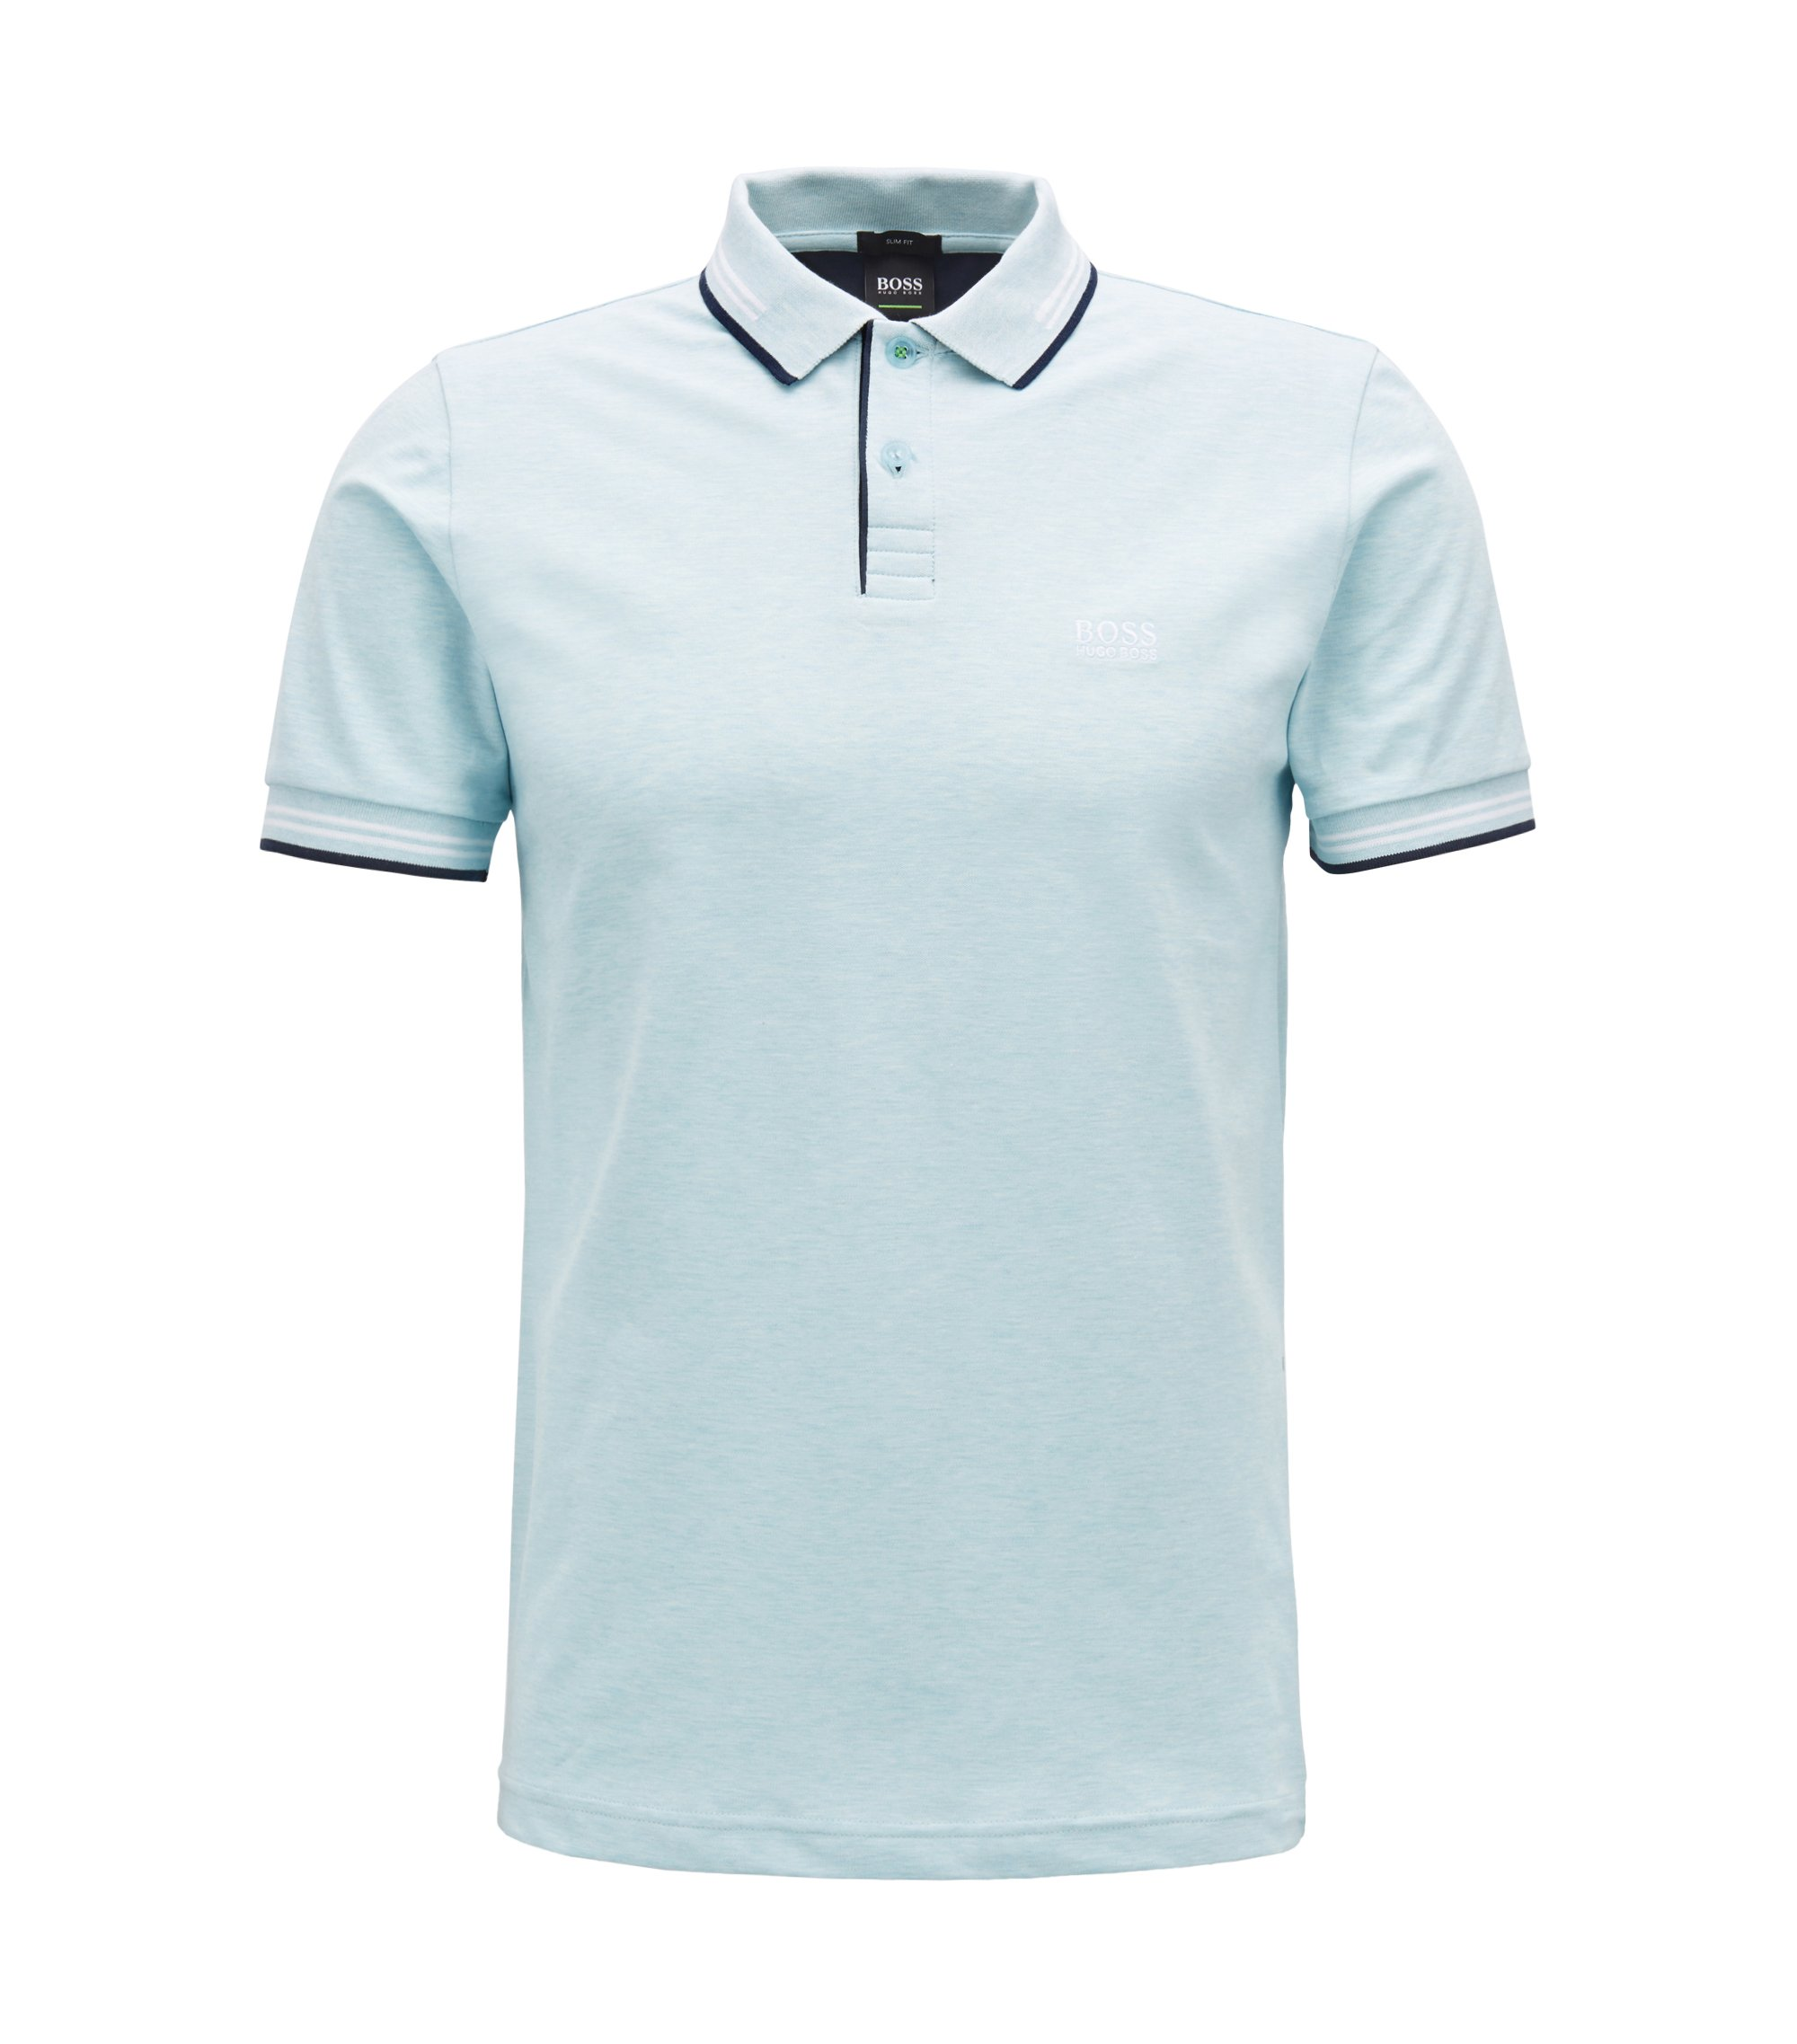 Polo Slim Fit en coton stretch avec bordure contrastante, Bleu vif